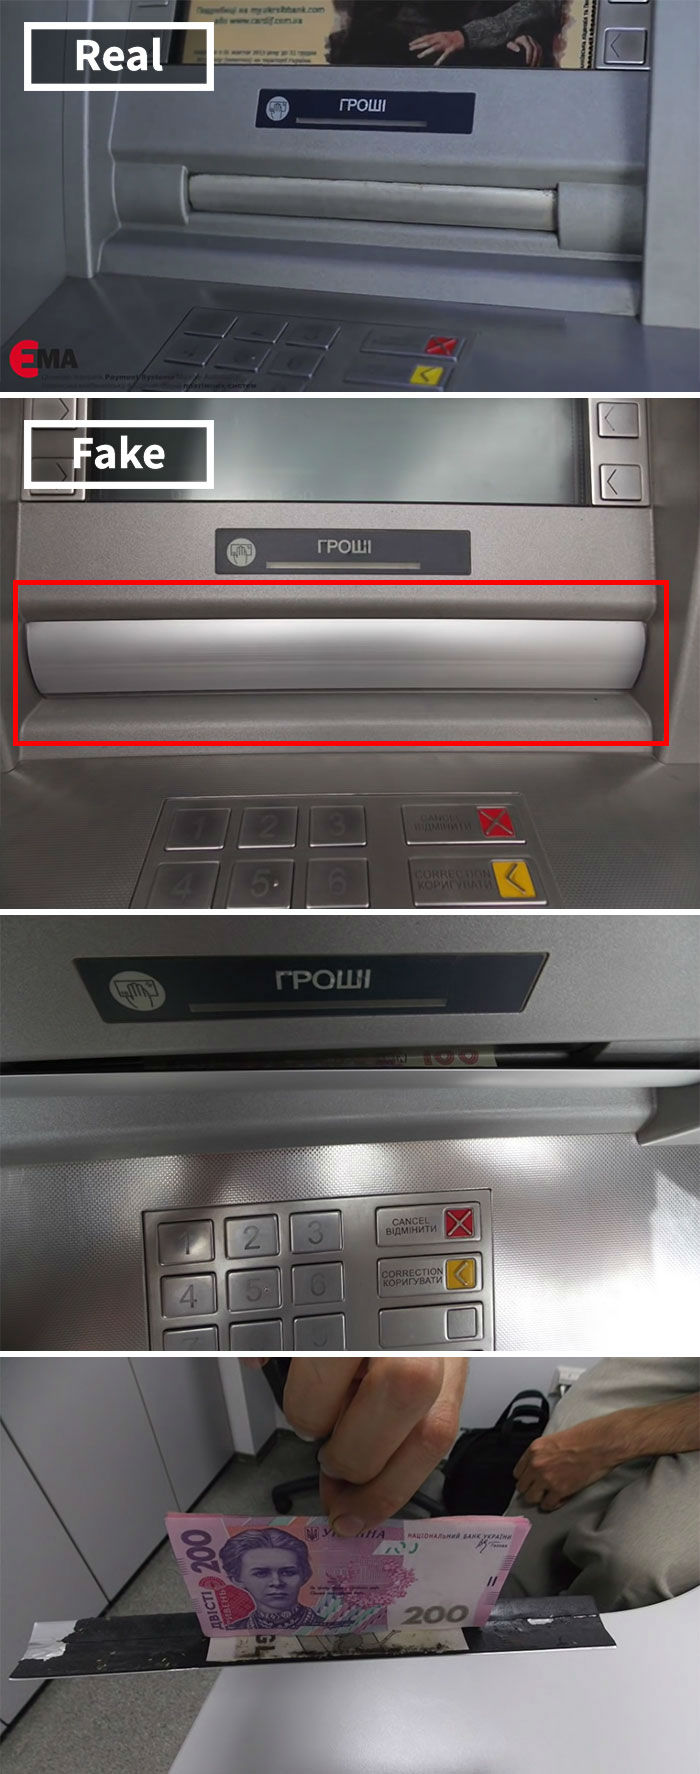 how-to-spot-atm-scam-8-594cd78fc3a4d__700-w750